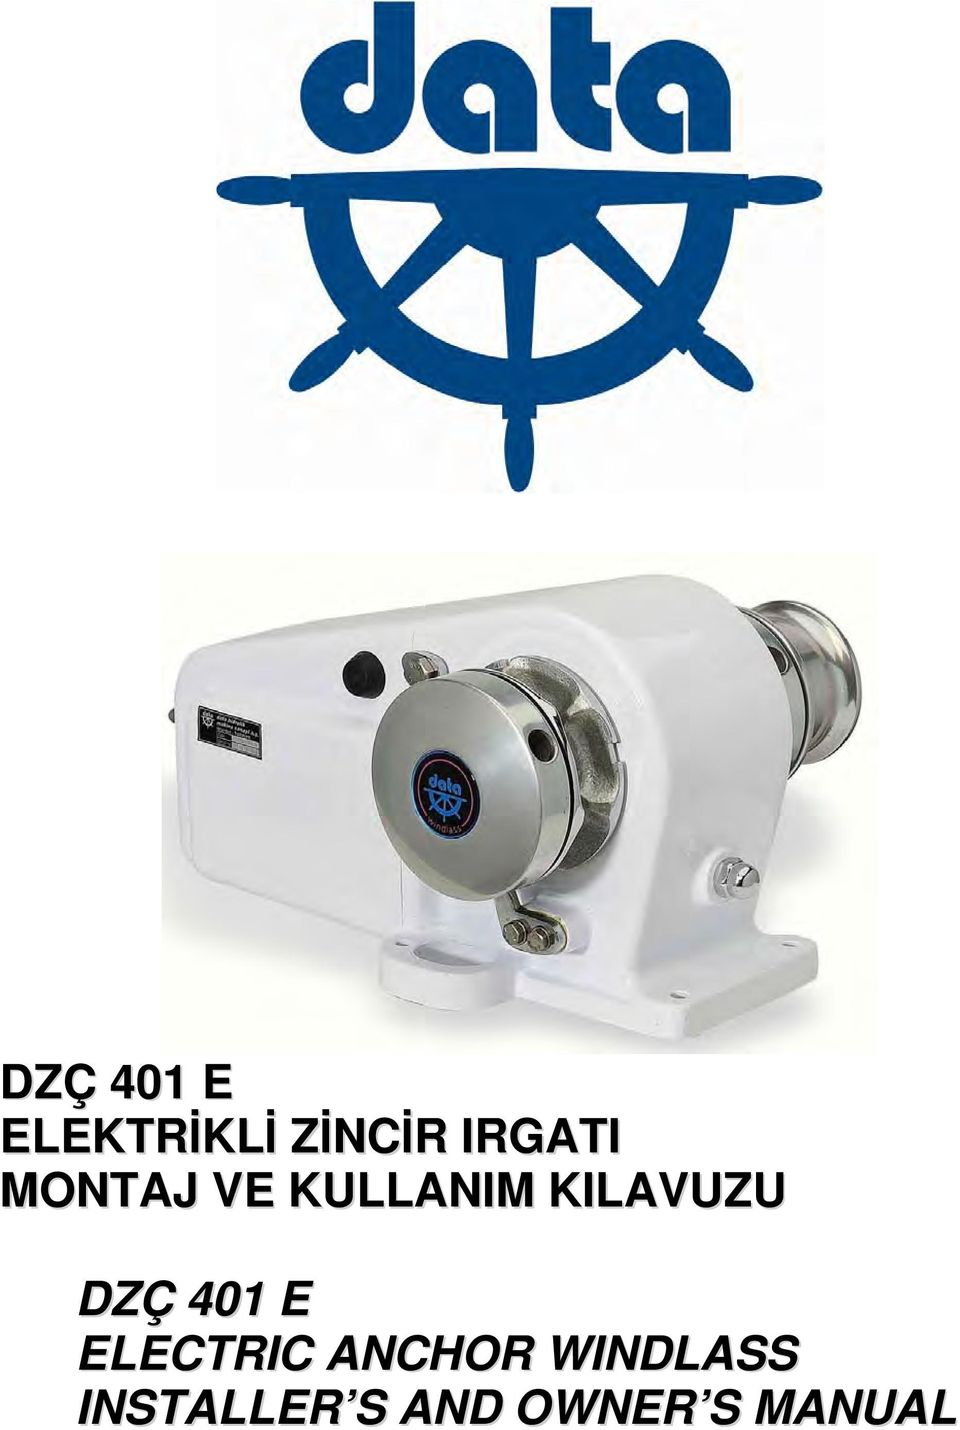 KILAVUZU DZÇ 401 E ELECTRIC